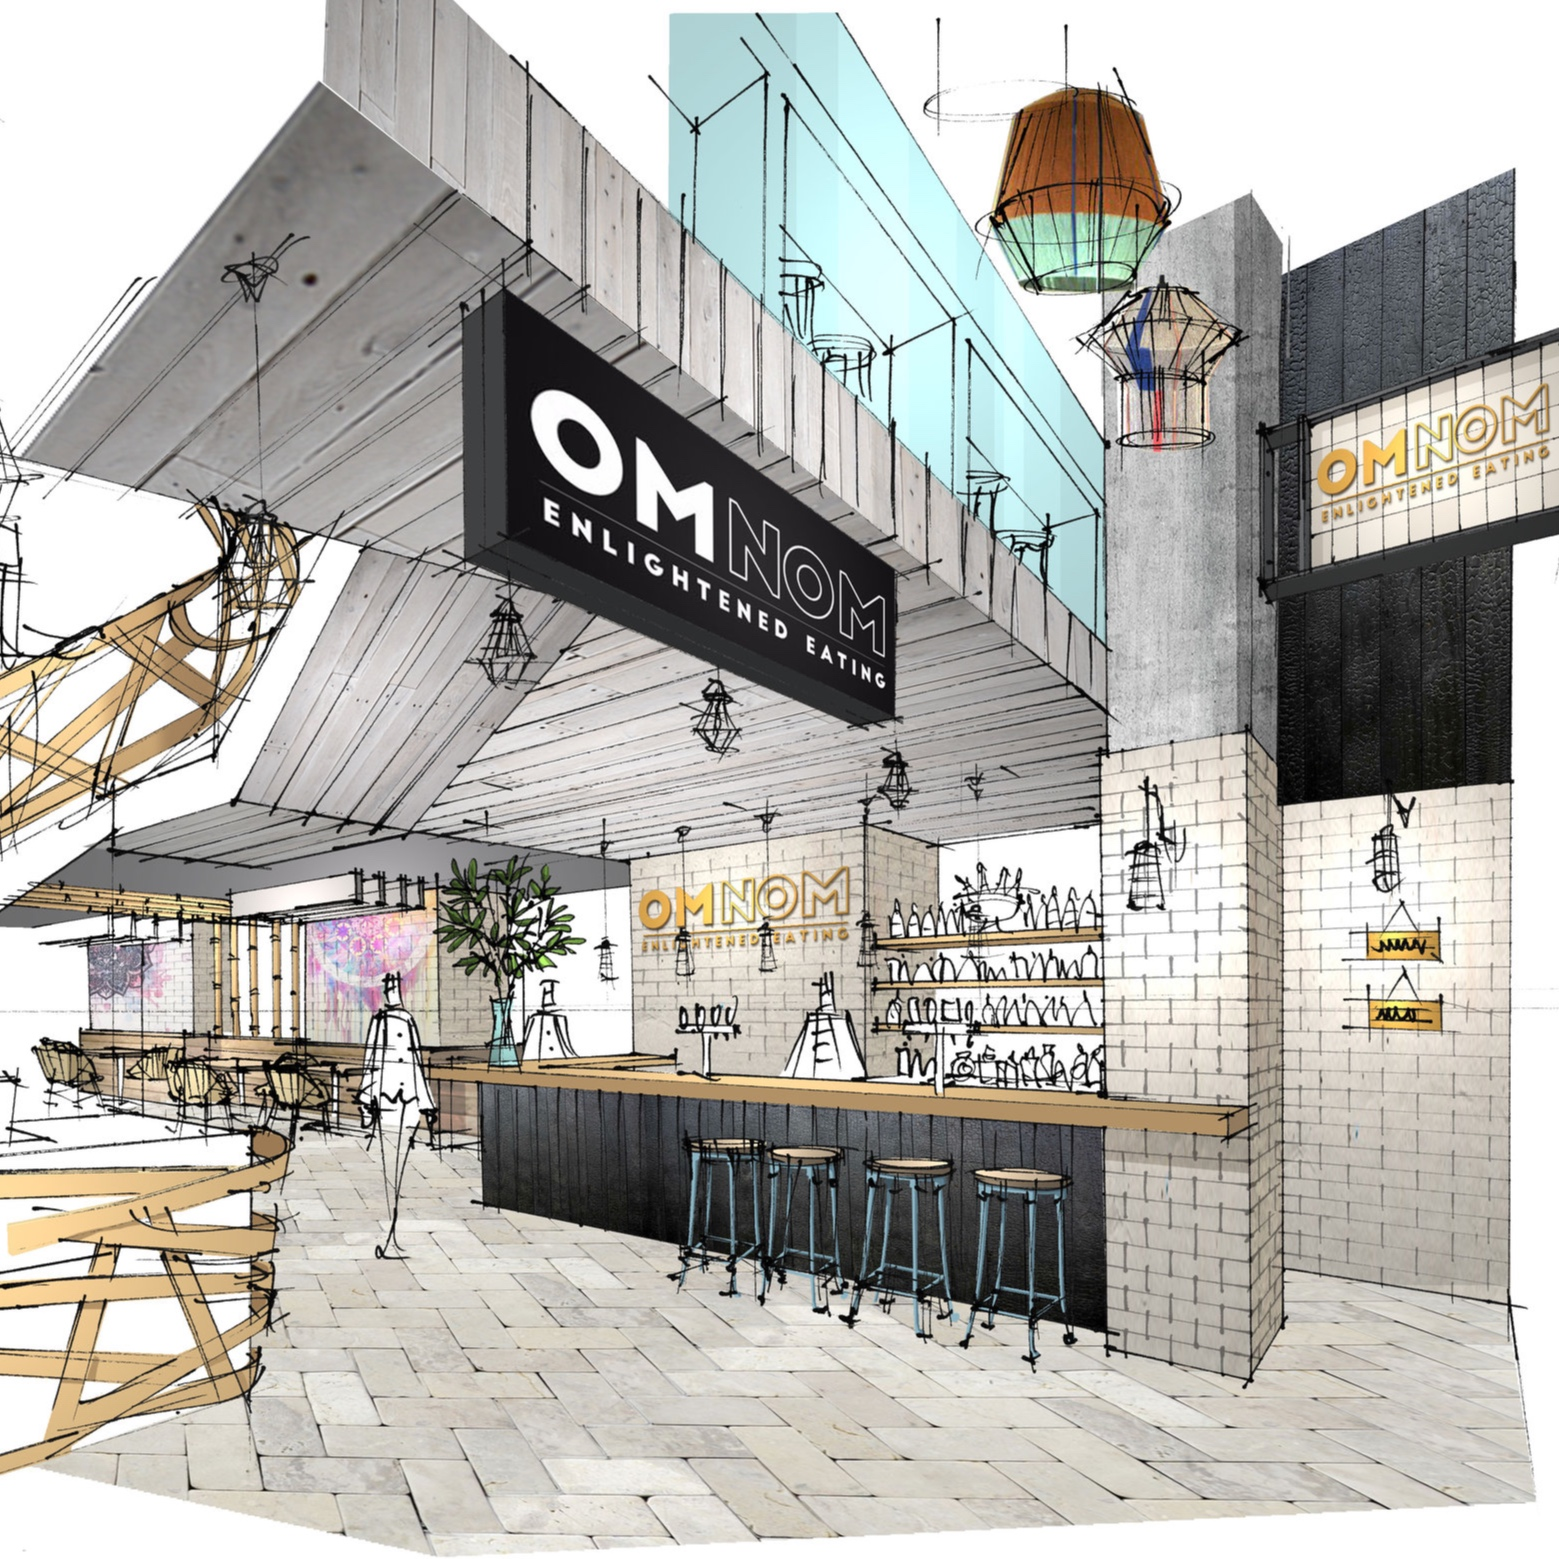 OmNom   Coming soon to Islington, London. The flagship OMNOM unit will comprise over 400 square meters of restaurant and wellbeing space (mindfulness/yoga) over two floors.